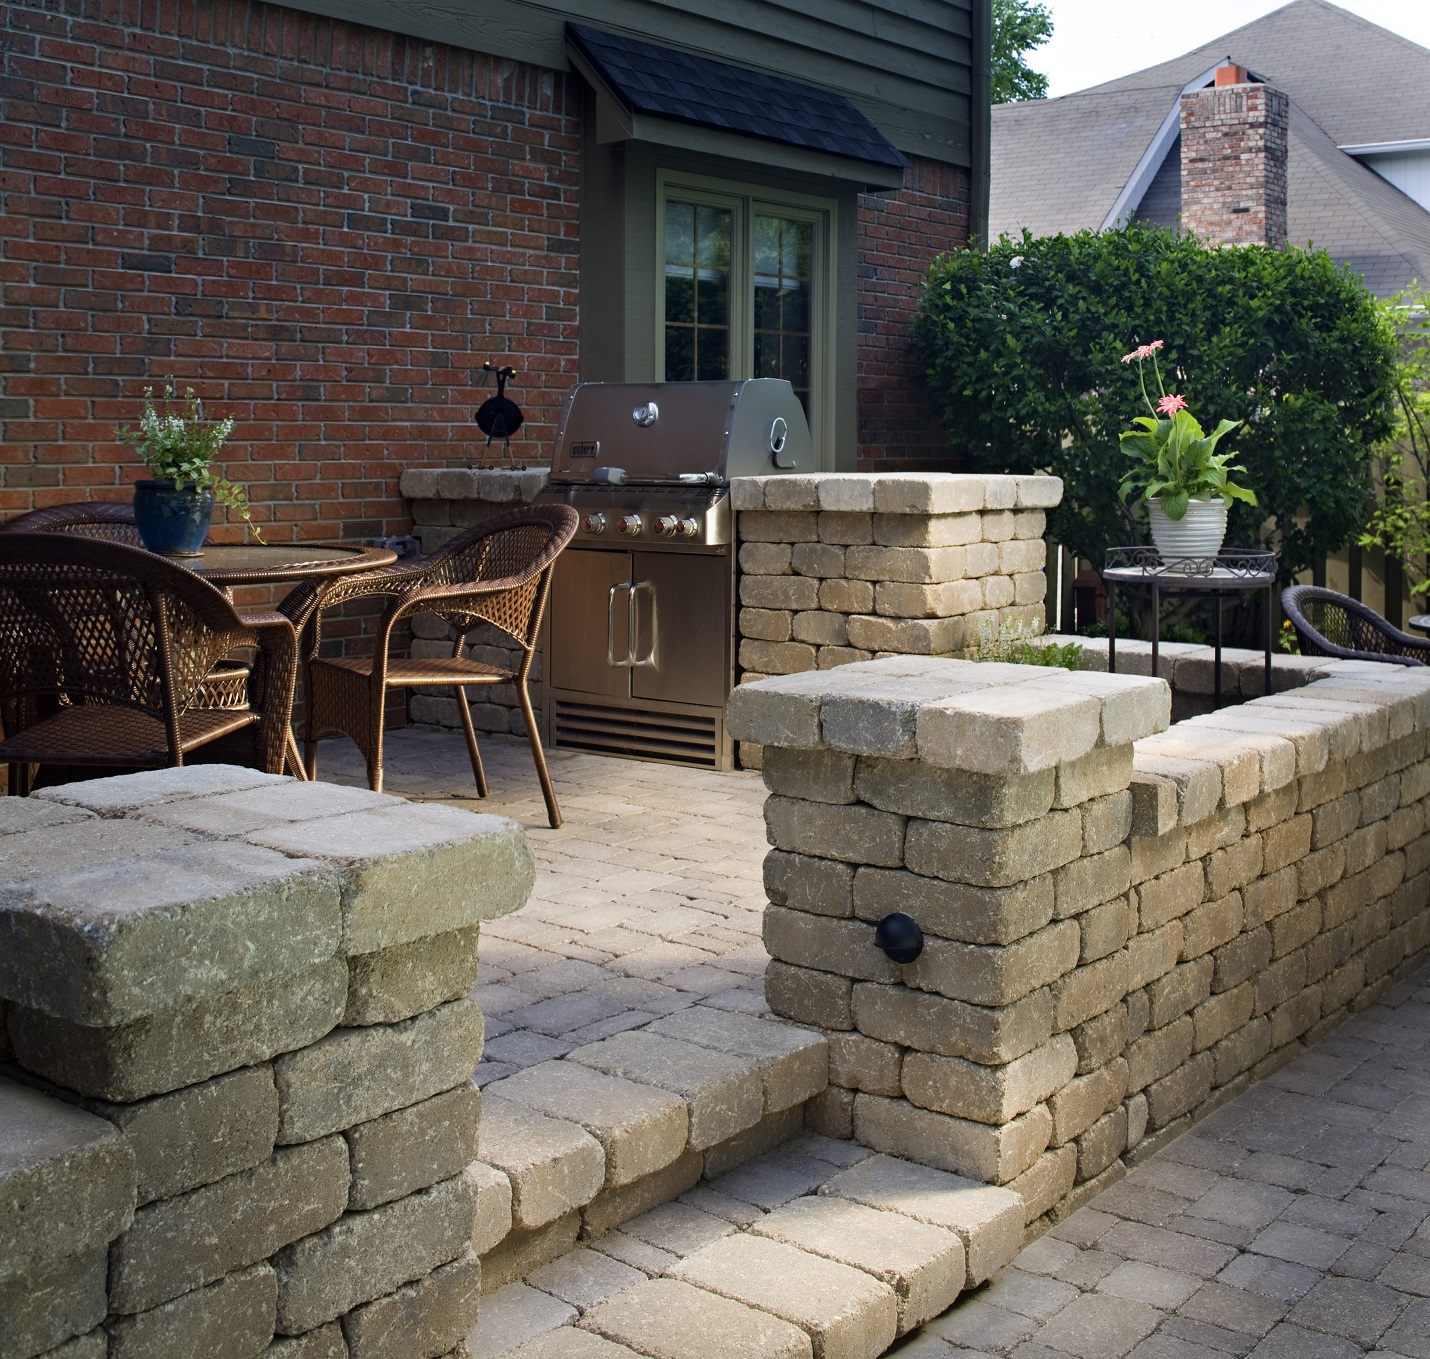 Paver-patio-with-walls